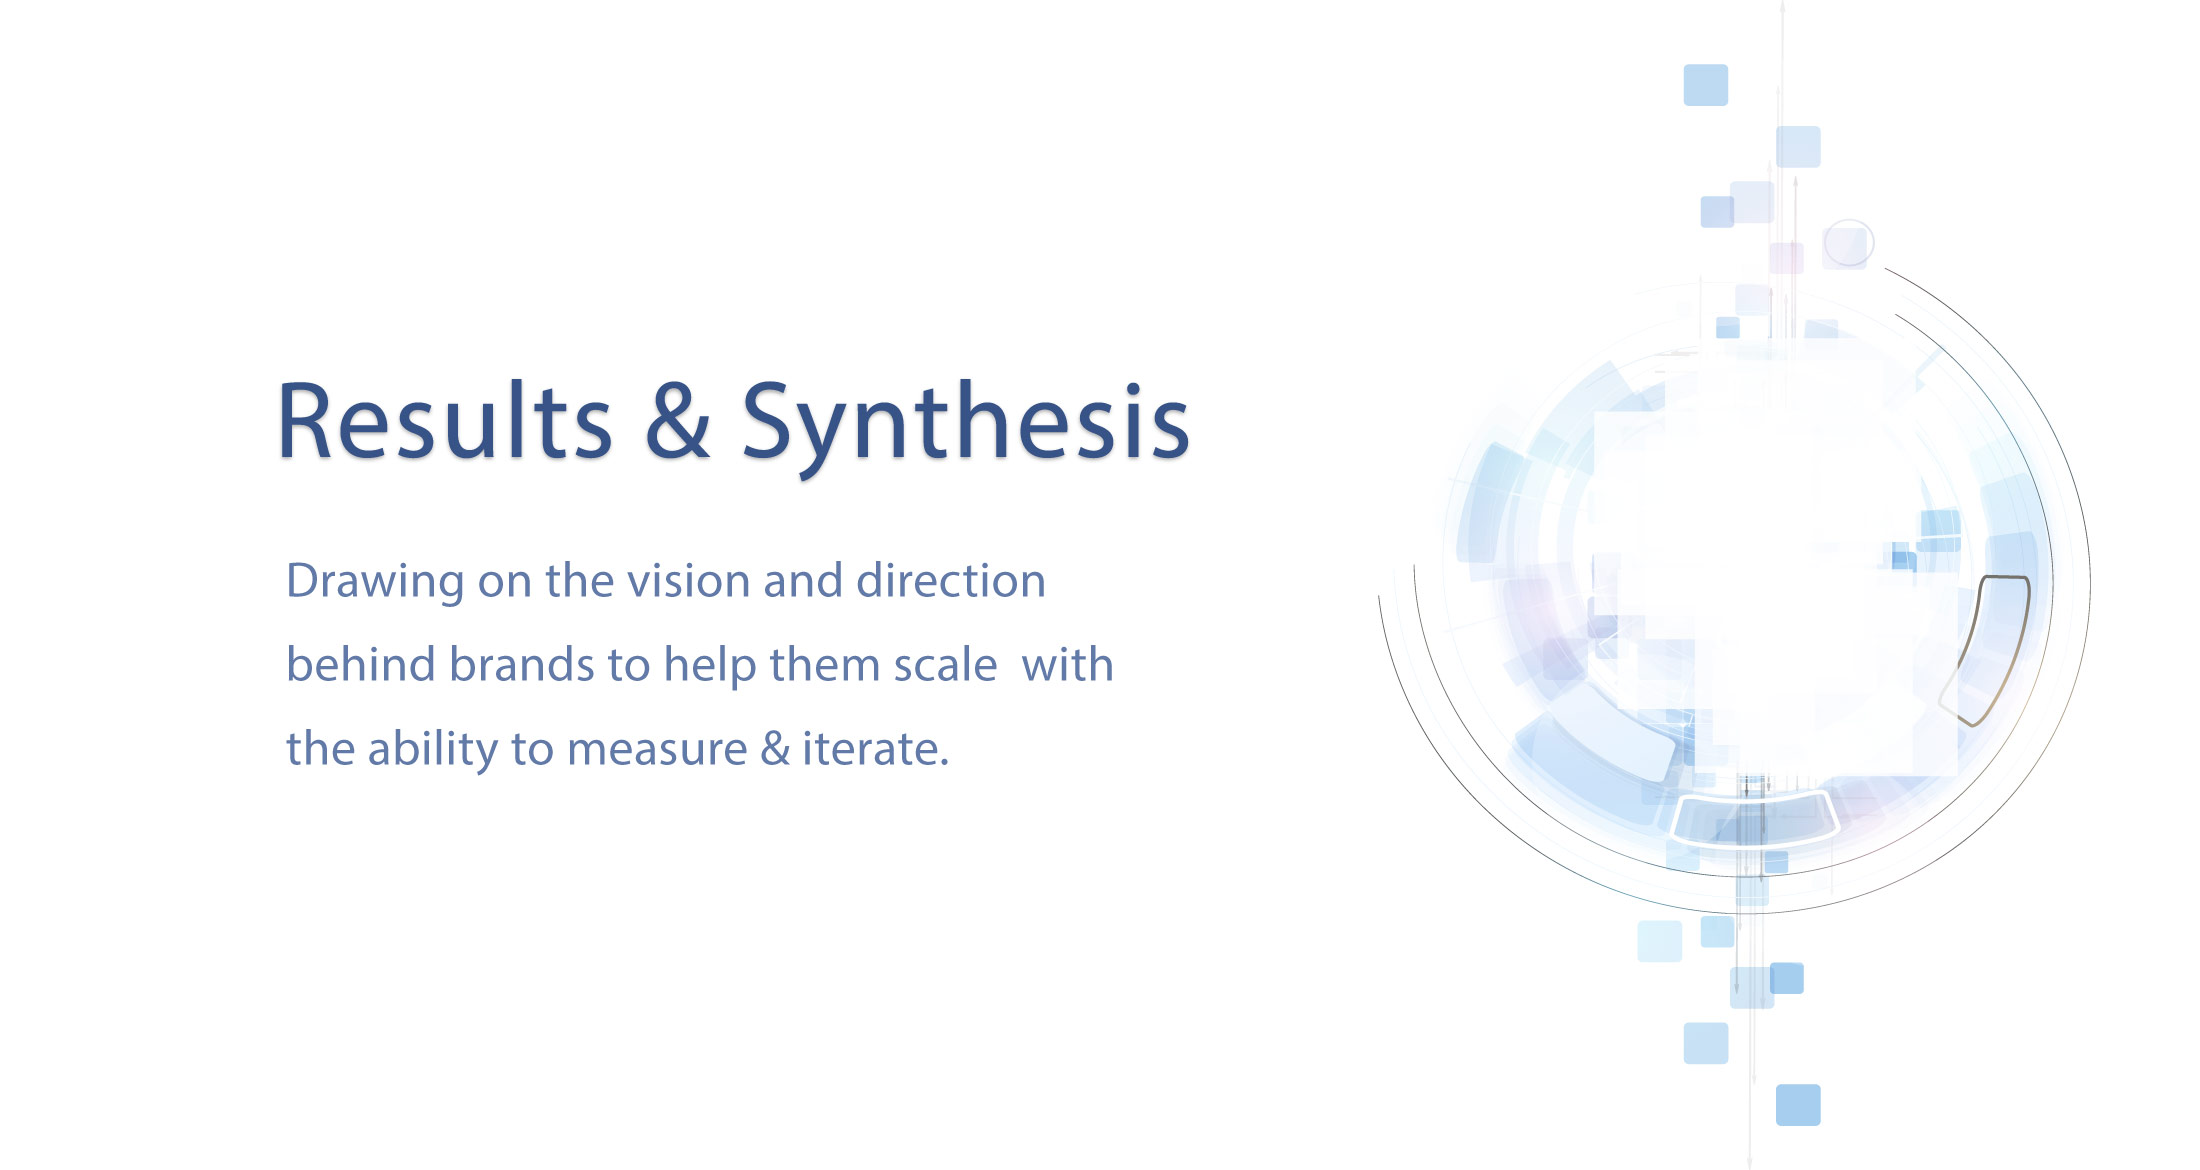 Results & Synthesis